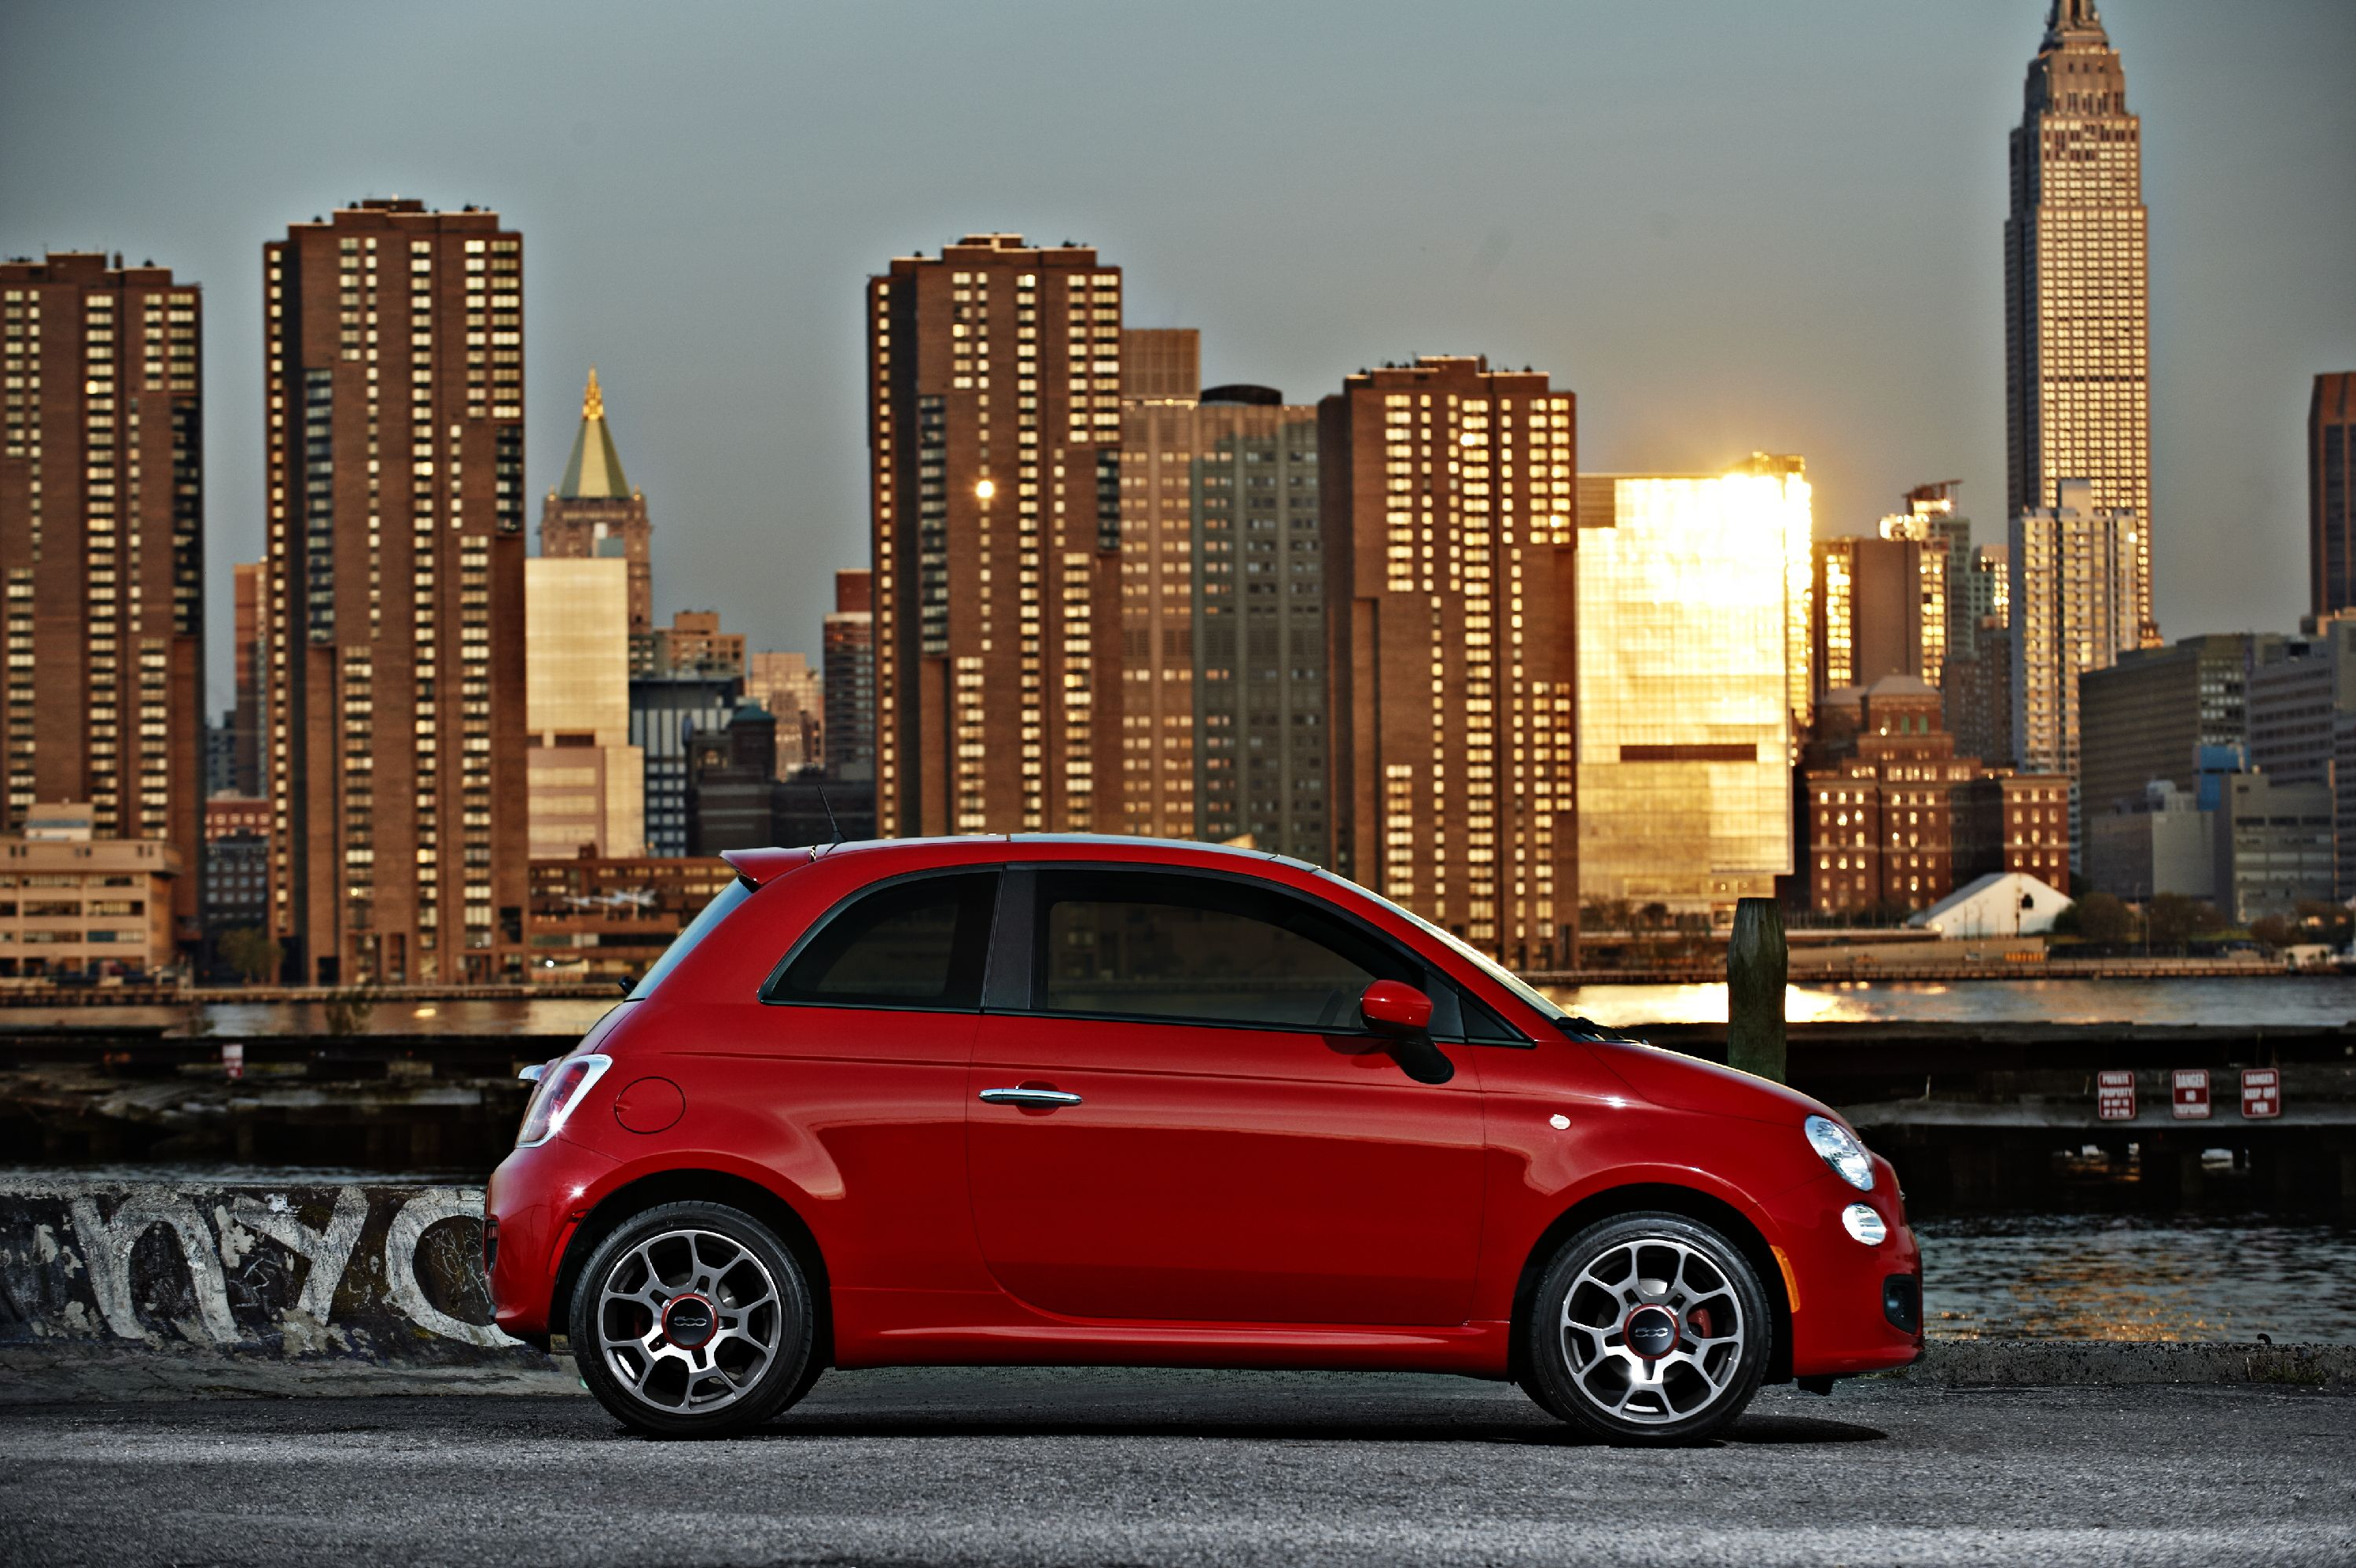 3 is the 2012 fiat 500 | products i love | pinterest | 2012 fiat